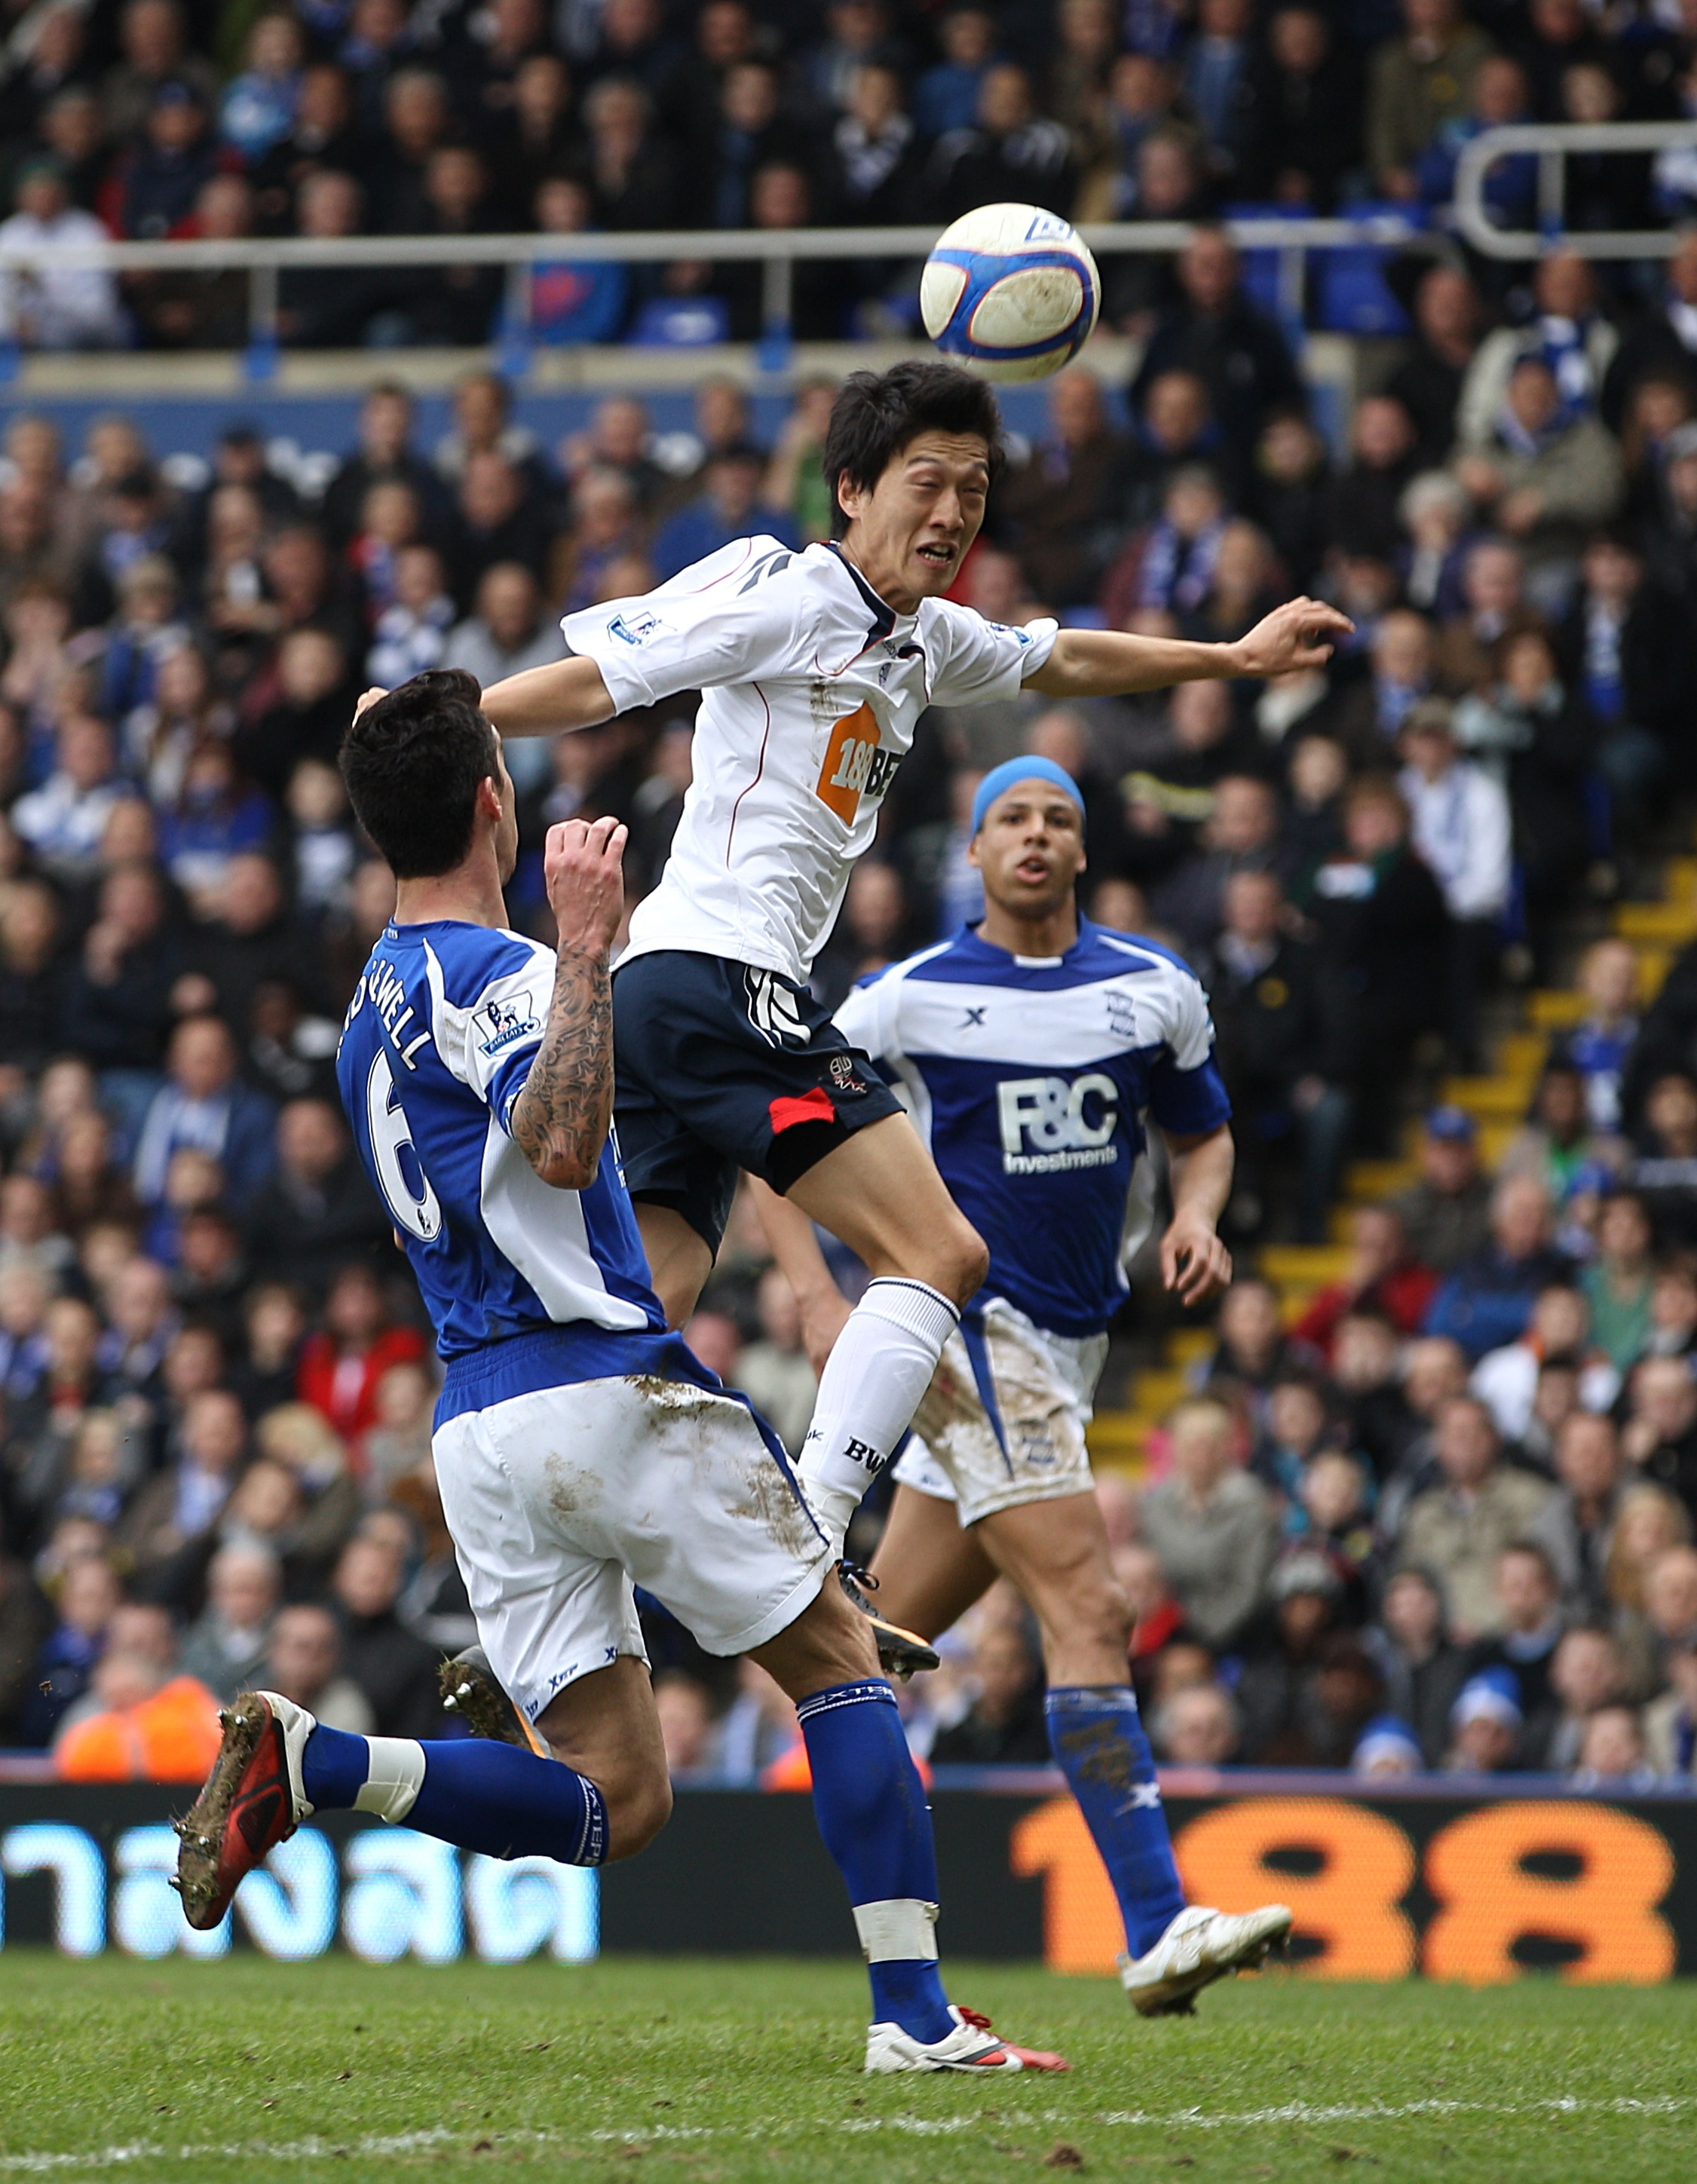 Bolton Wanderers' Chung-Yong Lee (centre) scores their third goal.